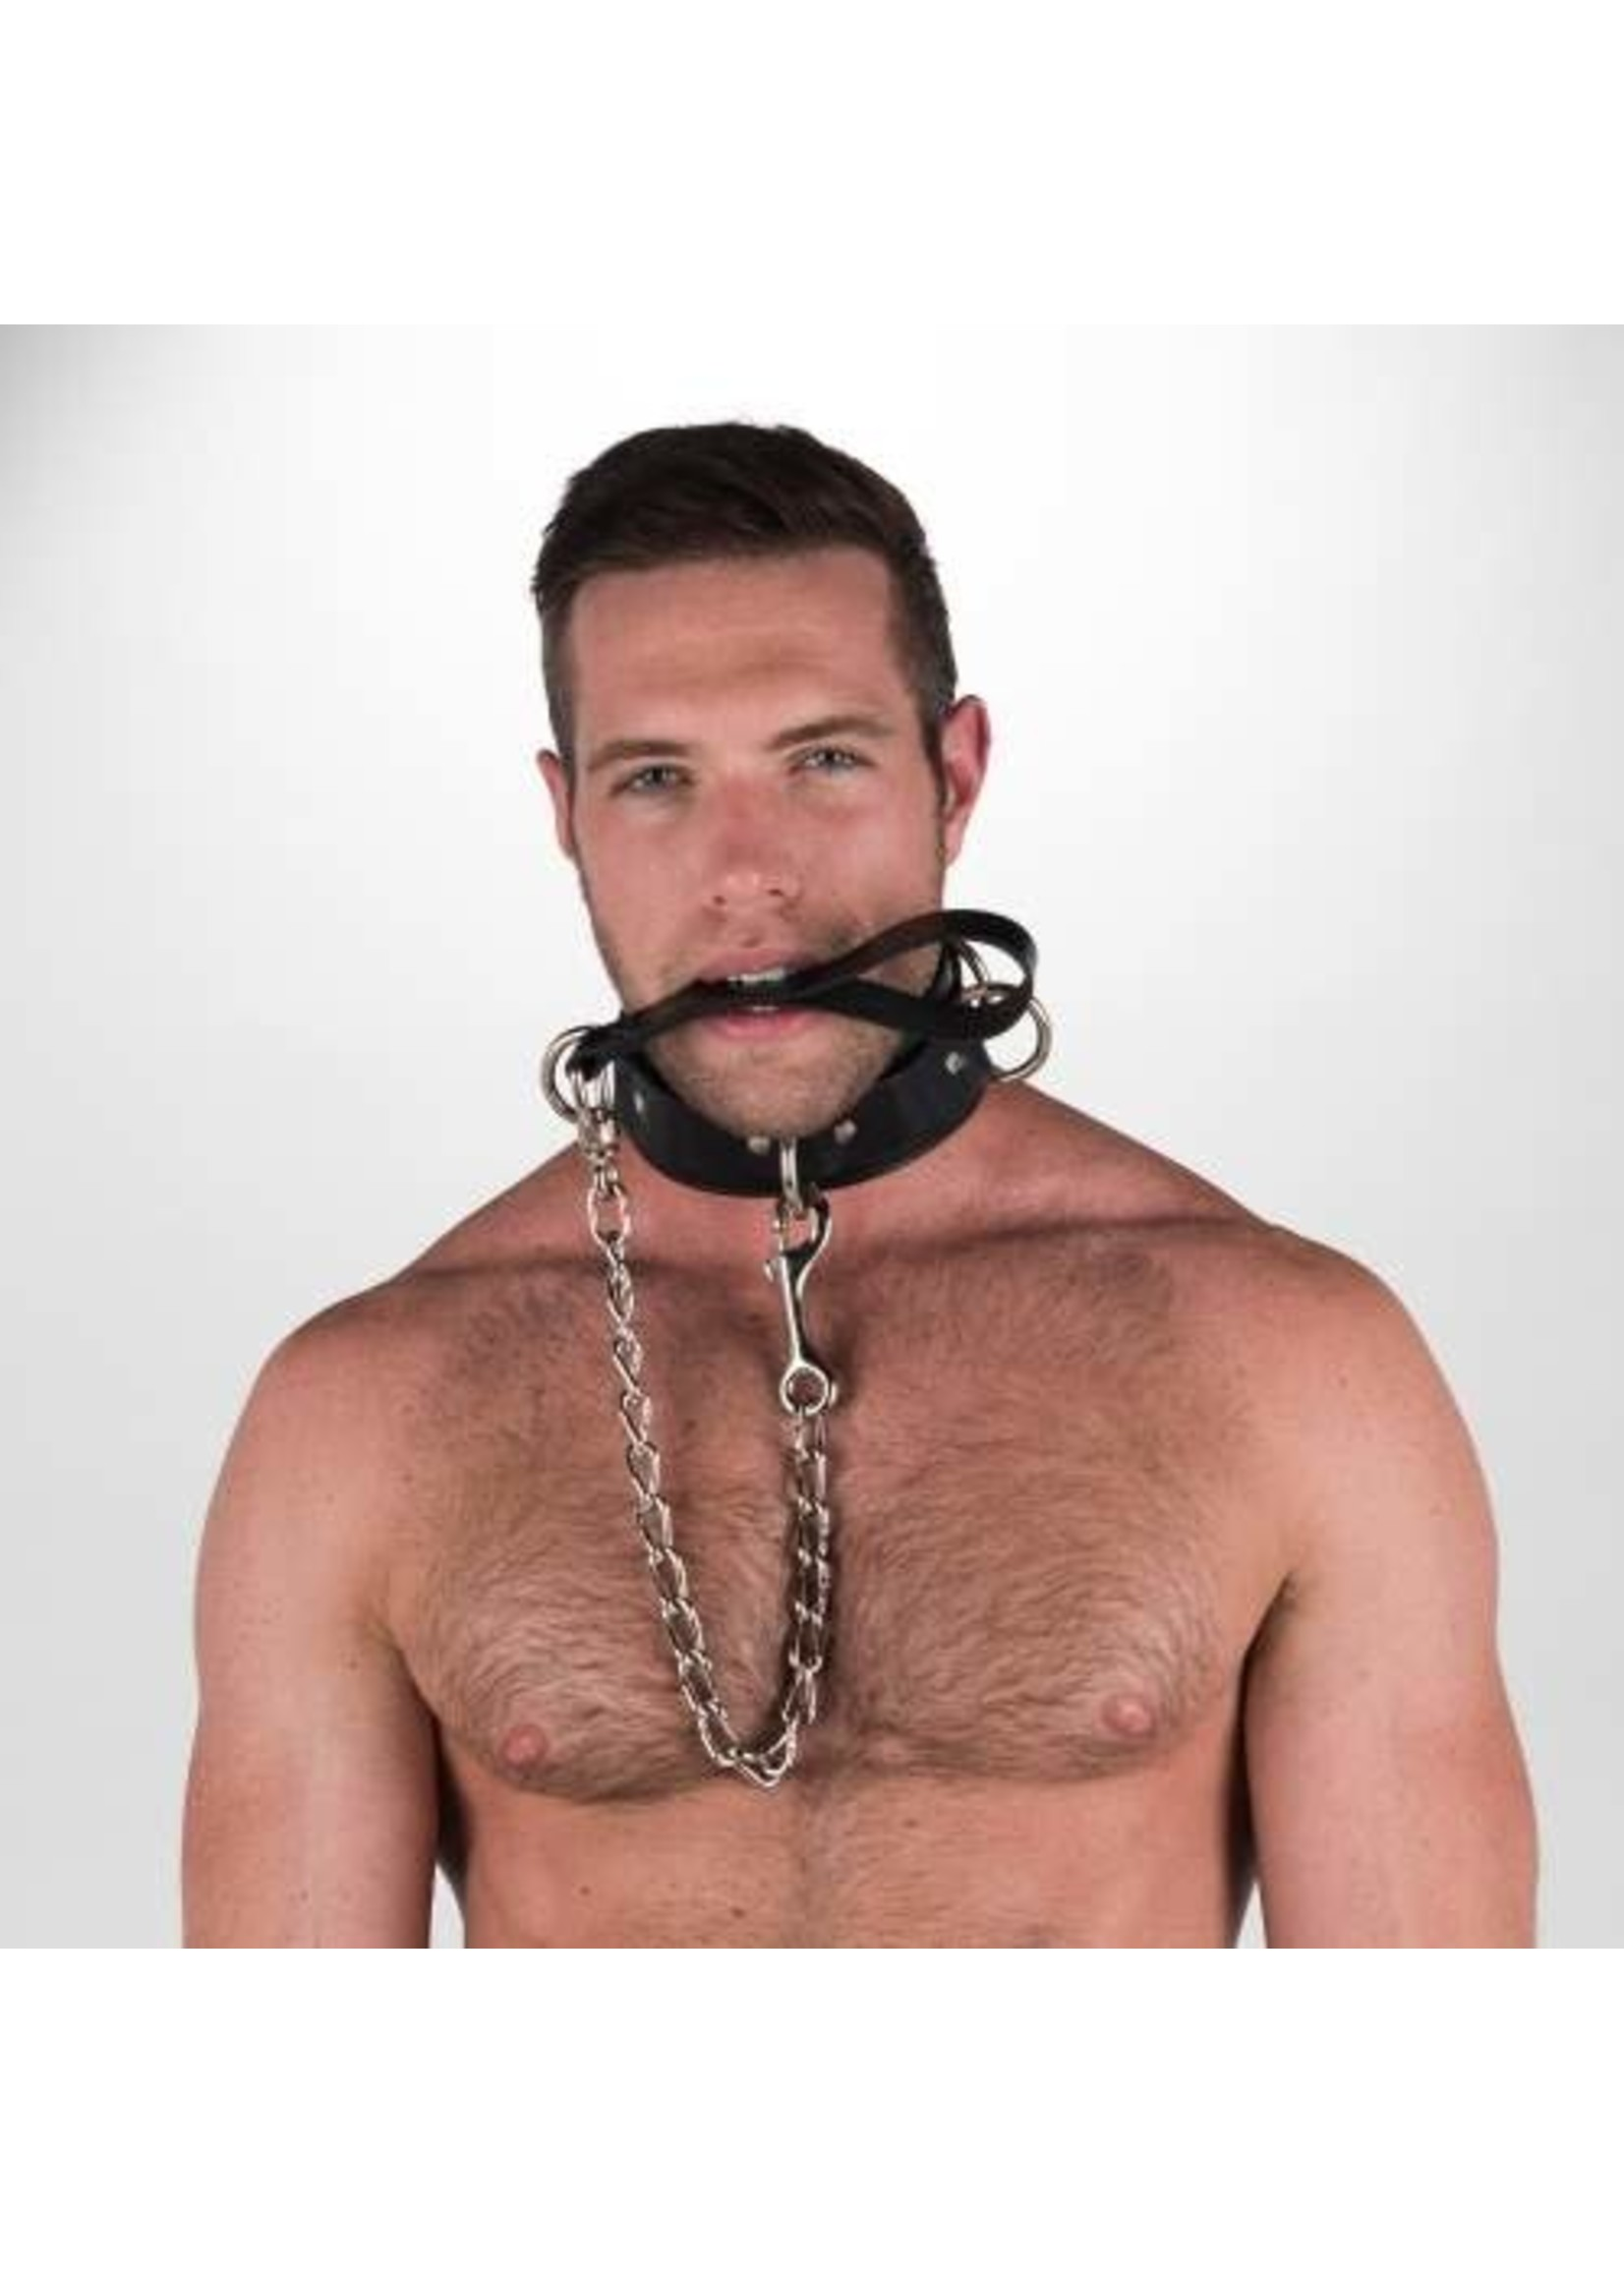 665 Leather 665 Chain Leash with Leather Strap